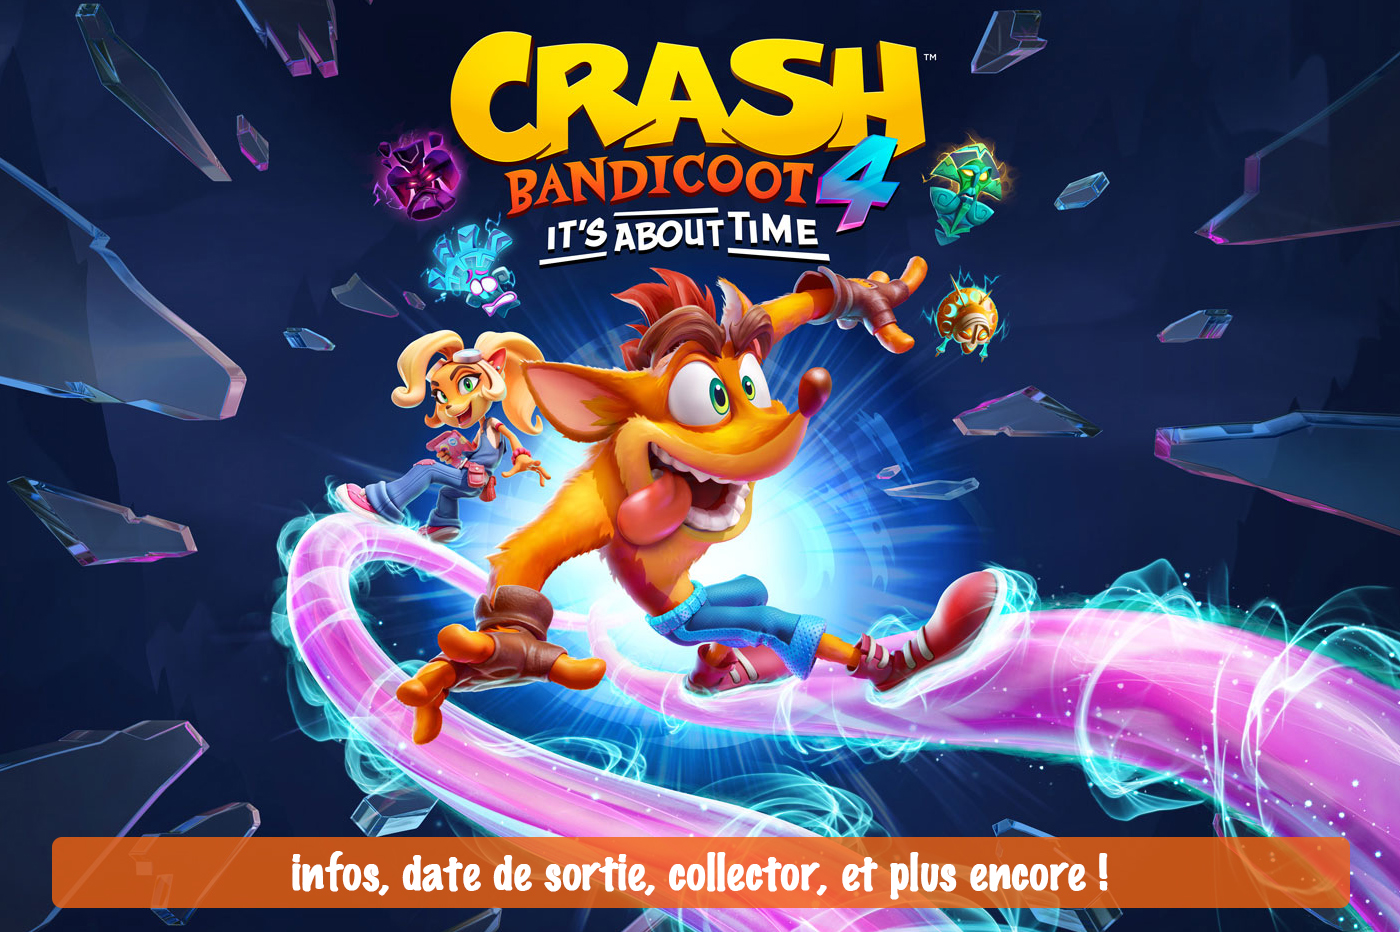 Crash Bandicoot 4 It's About Time : Infos, date, collector...